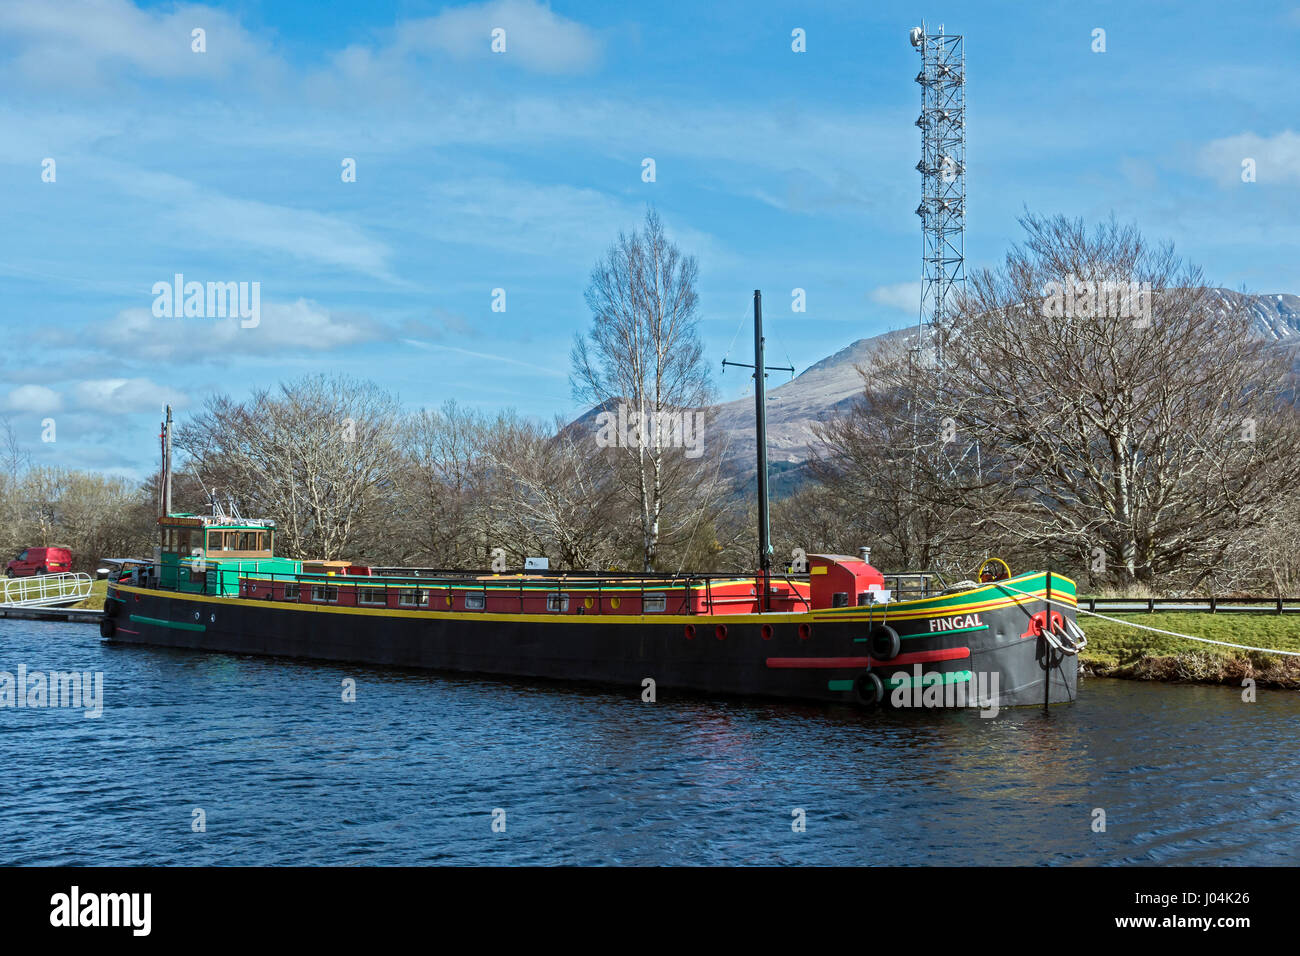 Barge Fingal moored in the Union Canal basin at Banavie near Fort William in Highland Scotland UK Stock Photo